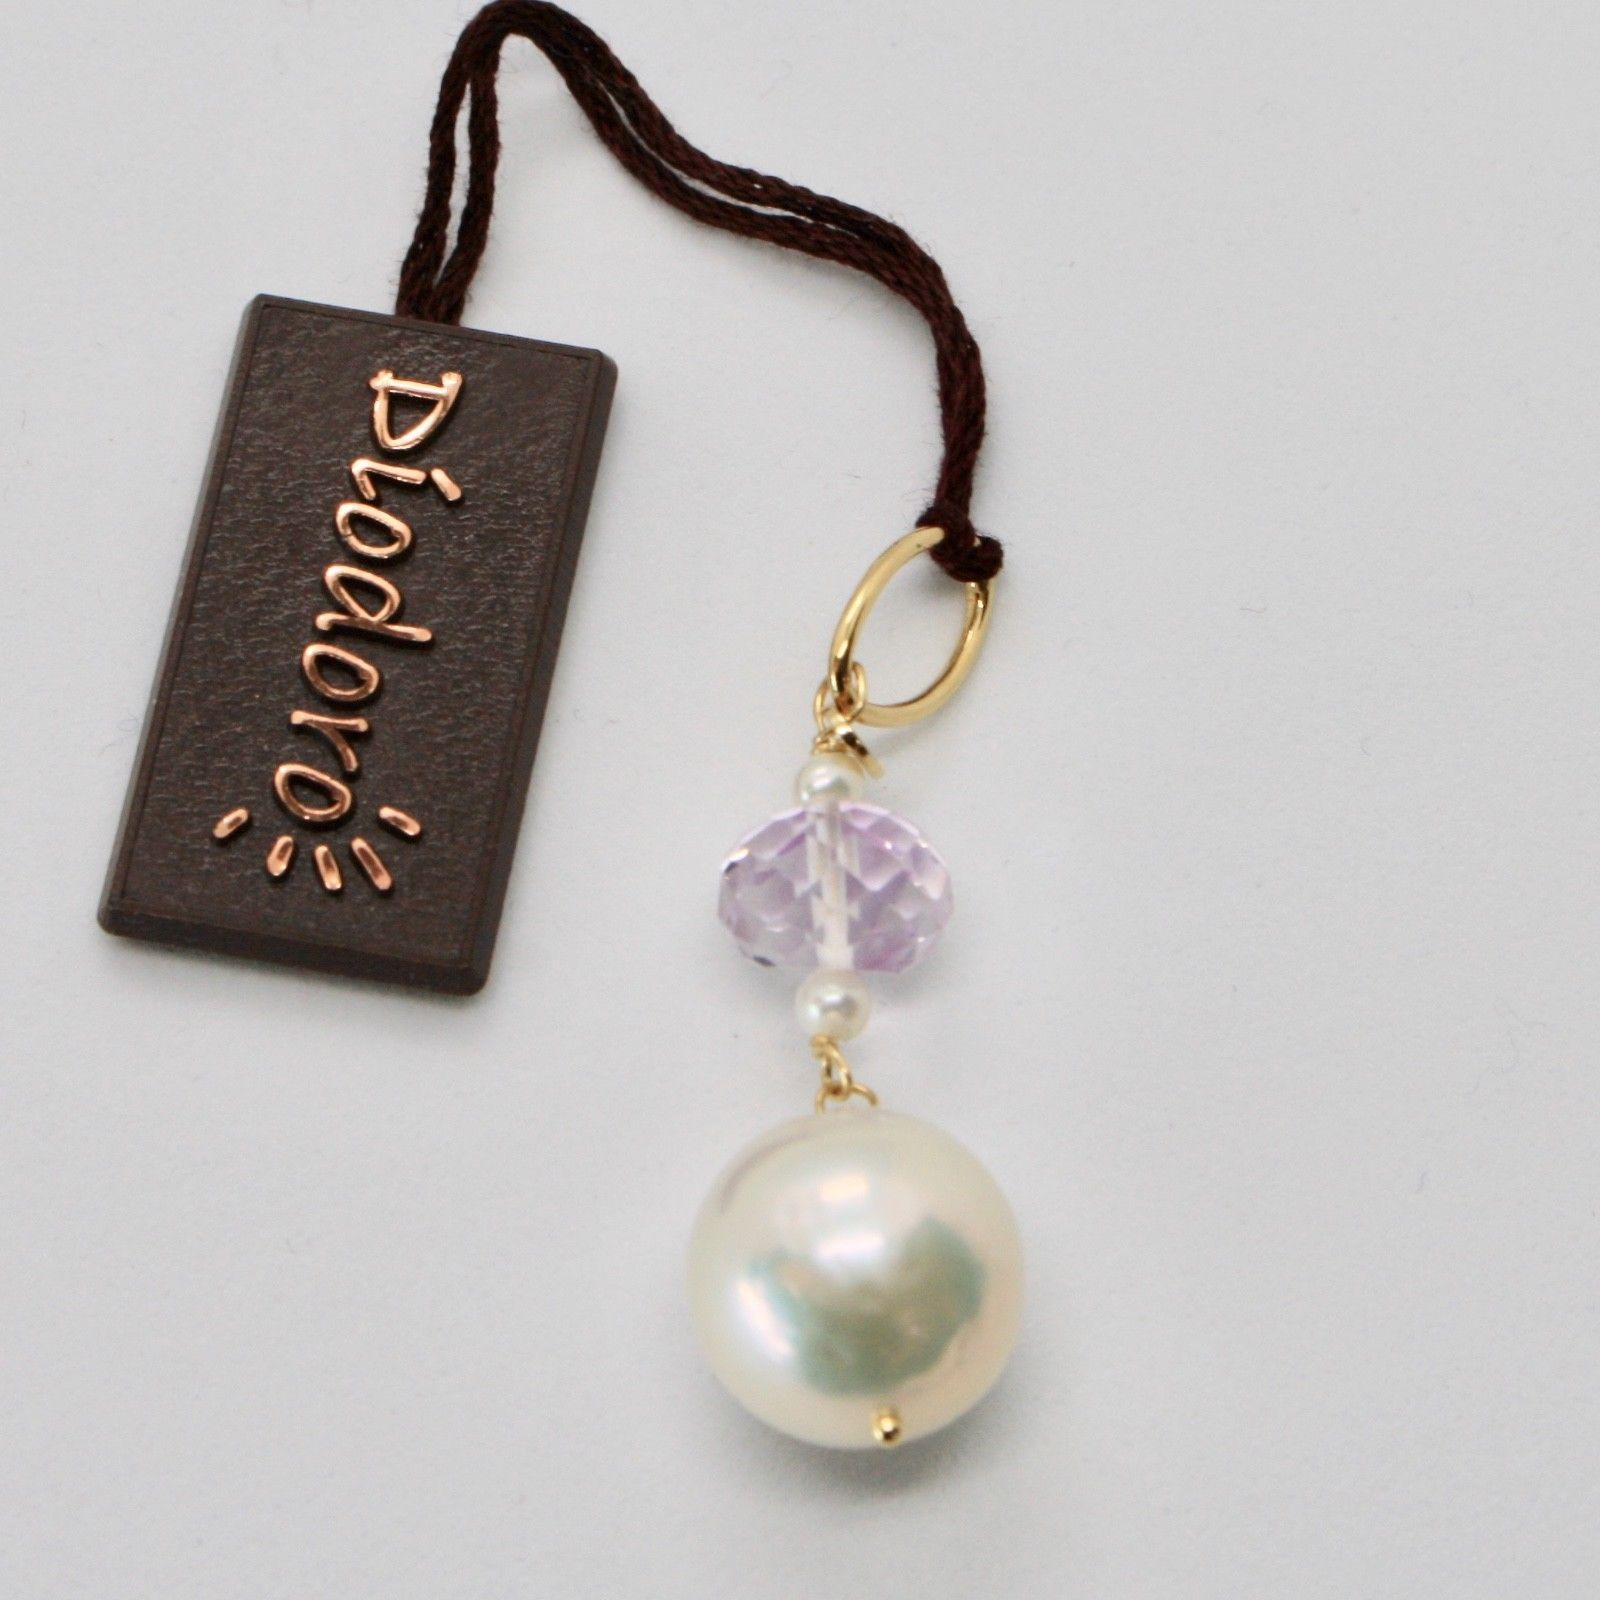 Charm 18kt Yellow Gold with White Pearl Freshwater and Amethyst Pink